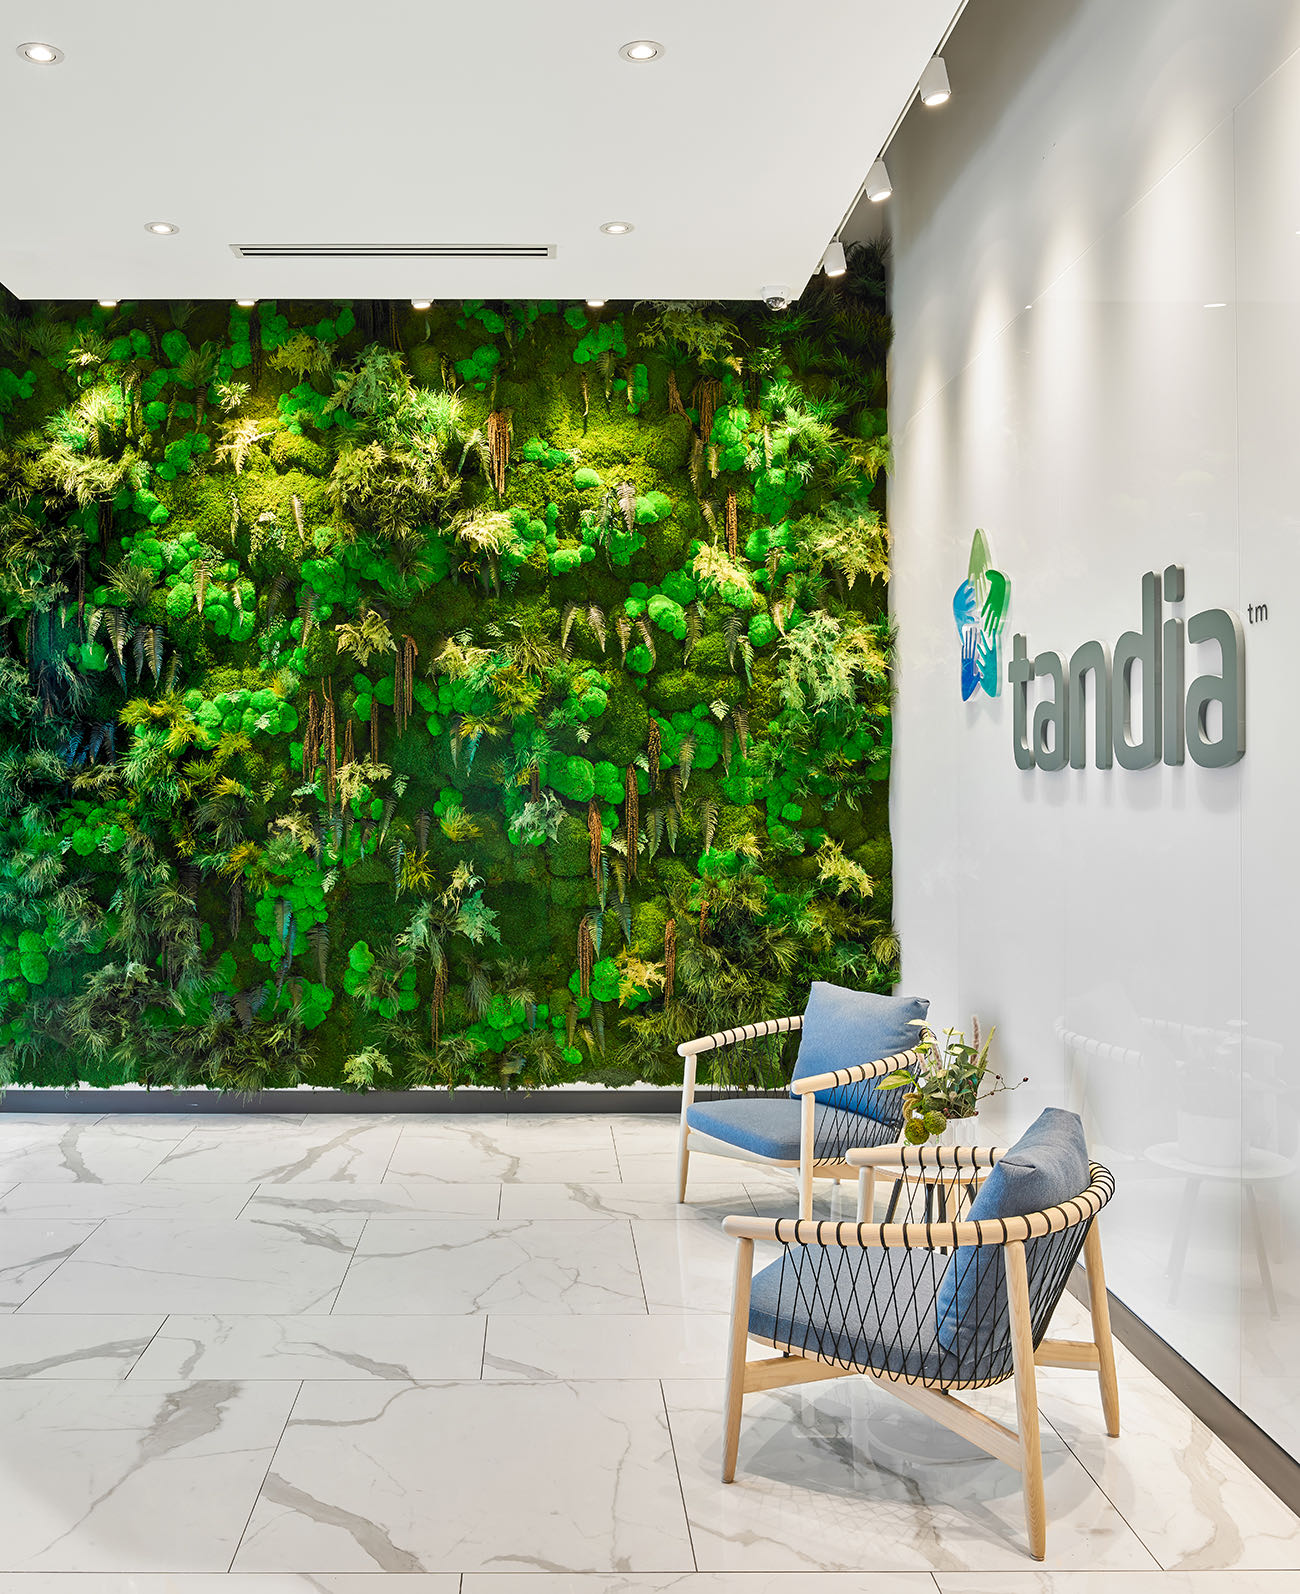 tandia-financial-office-12